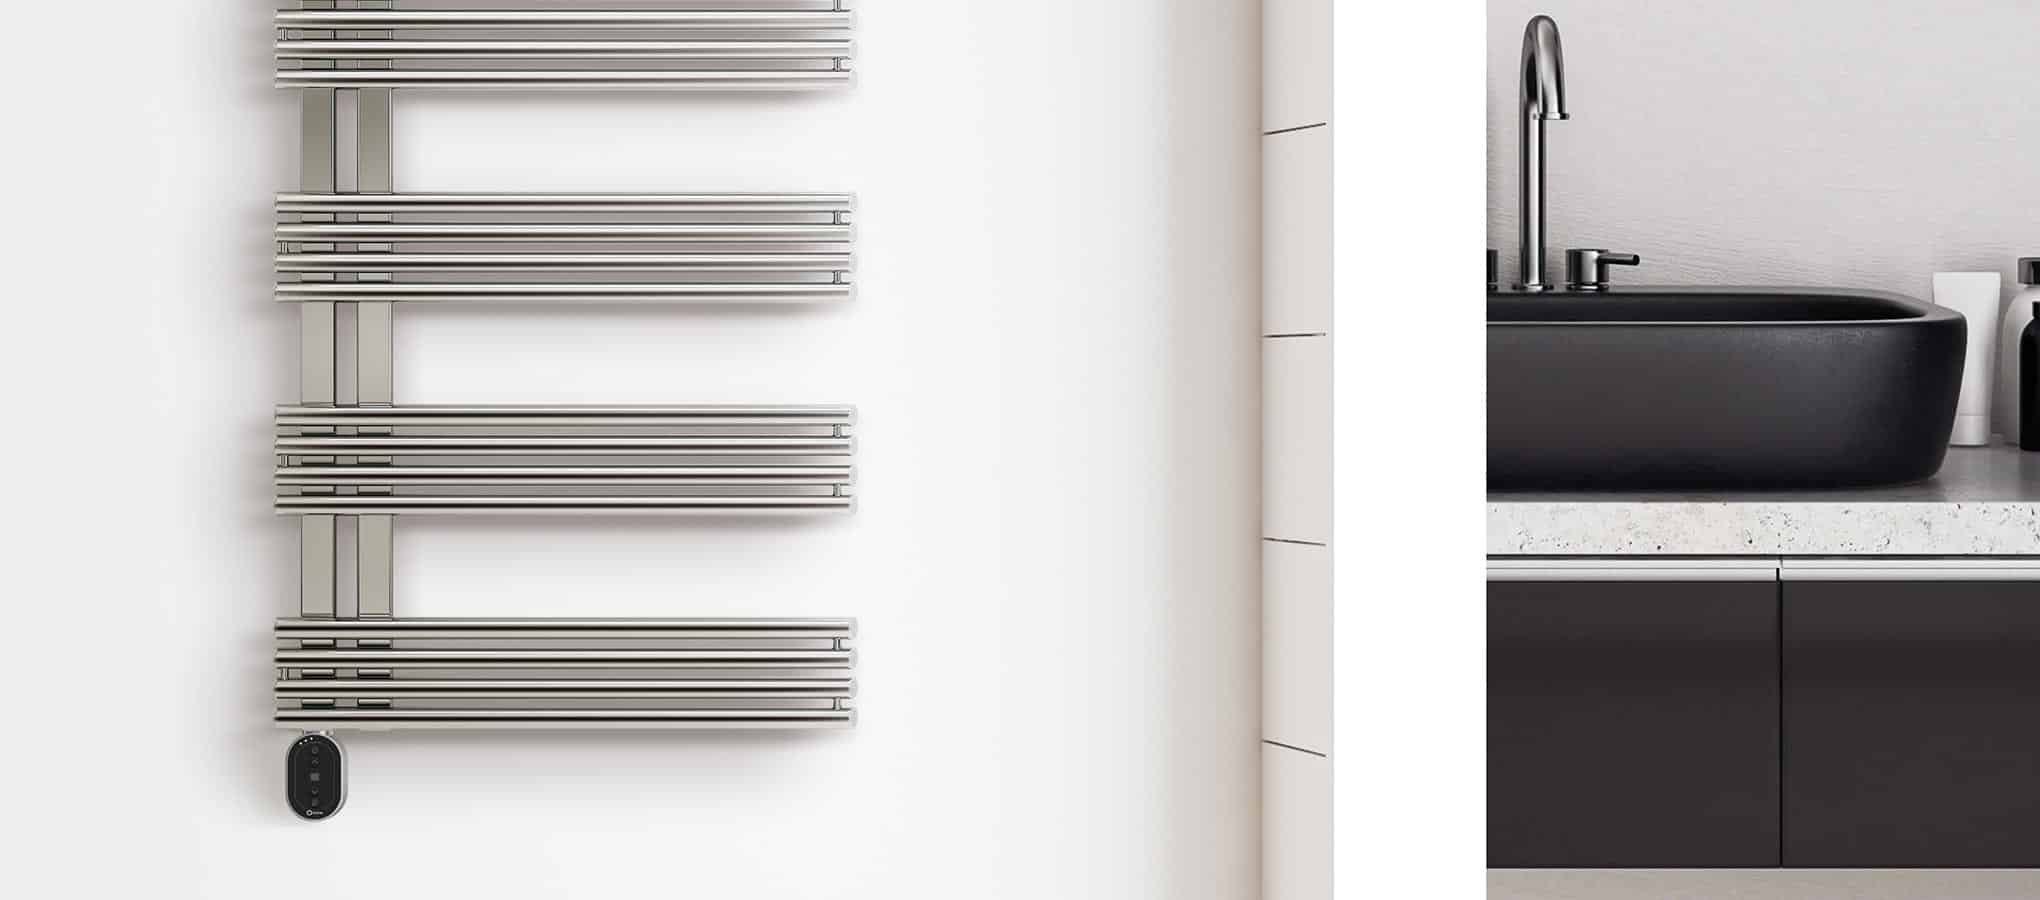 Rointe Impero electric towel rail with Oval control panel in a white bathroom